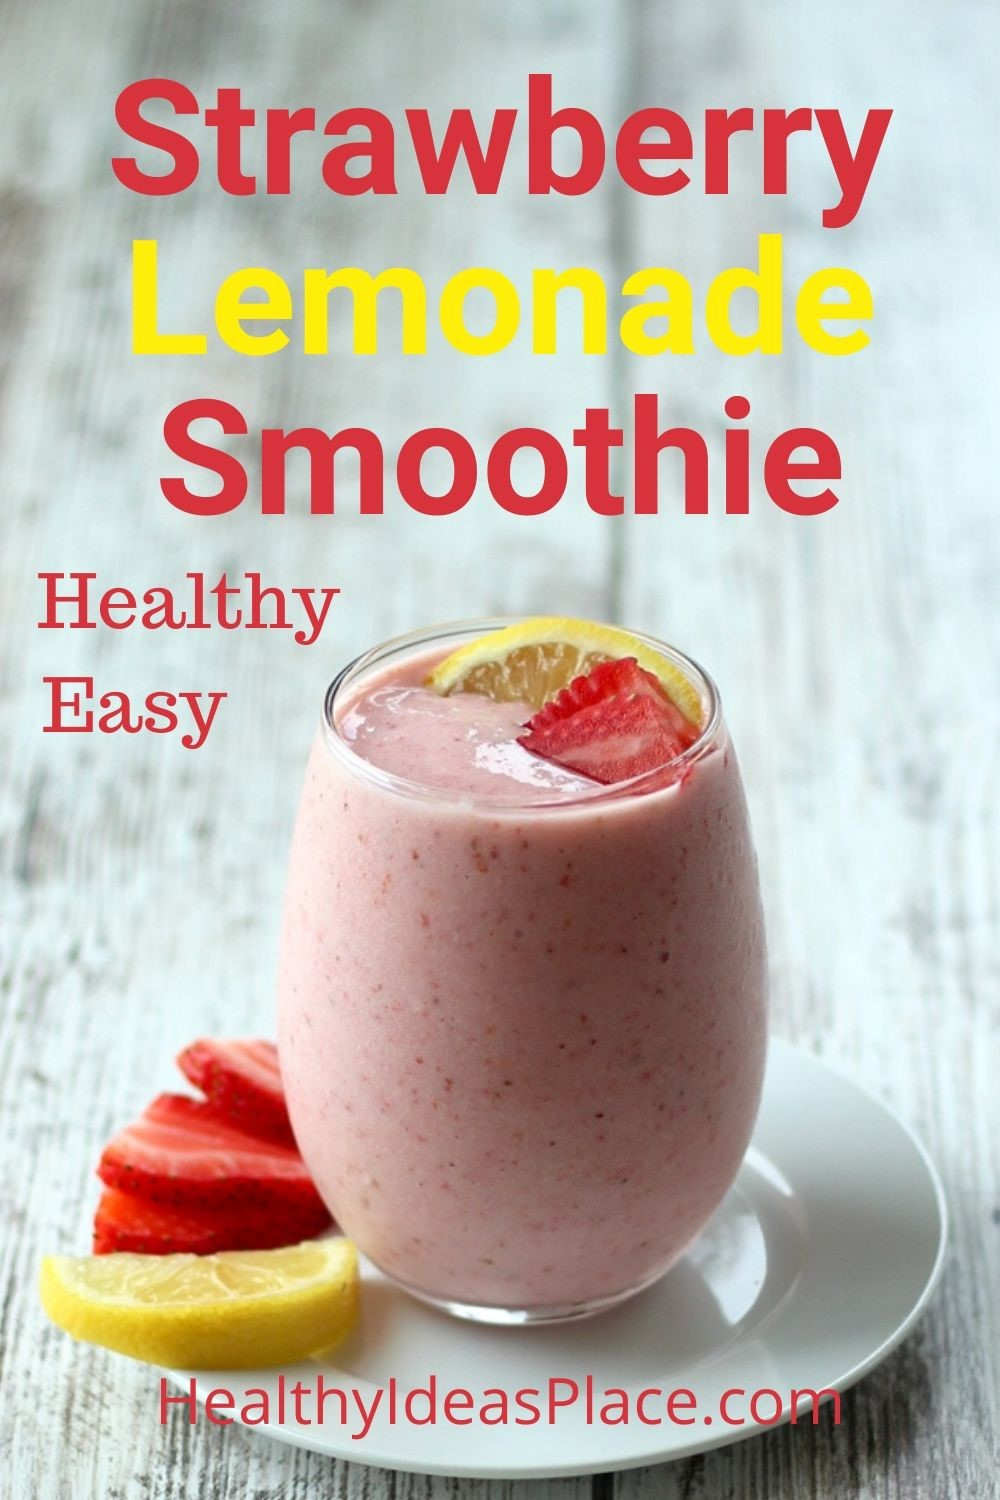 pink smoothie with strawberries and lemon in a clear glass